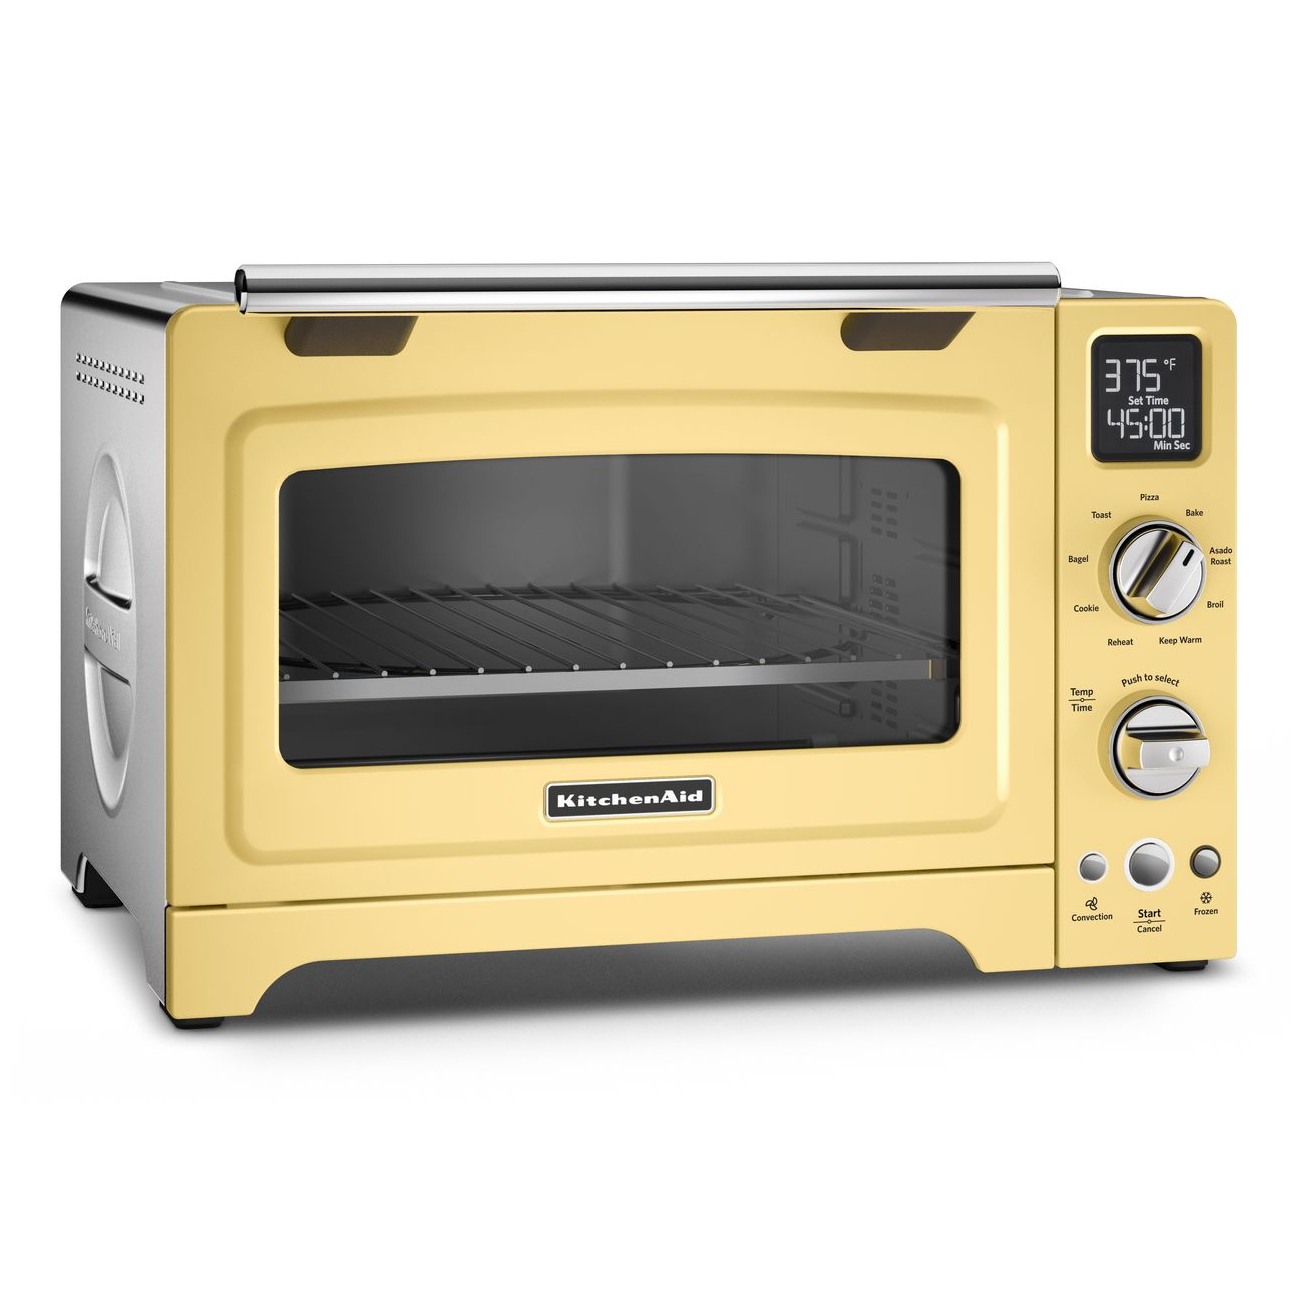 KitchenAid Majestic Yellow Digital Convection Oven